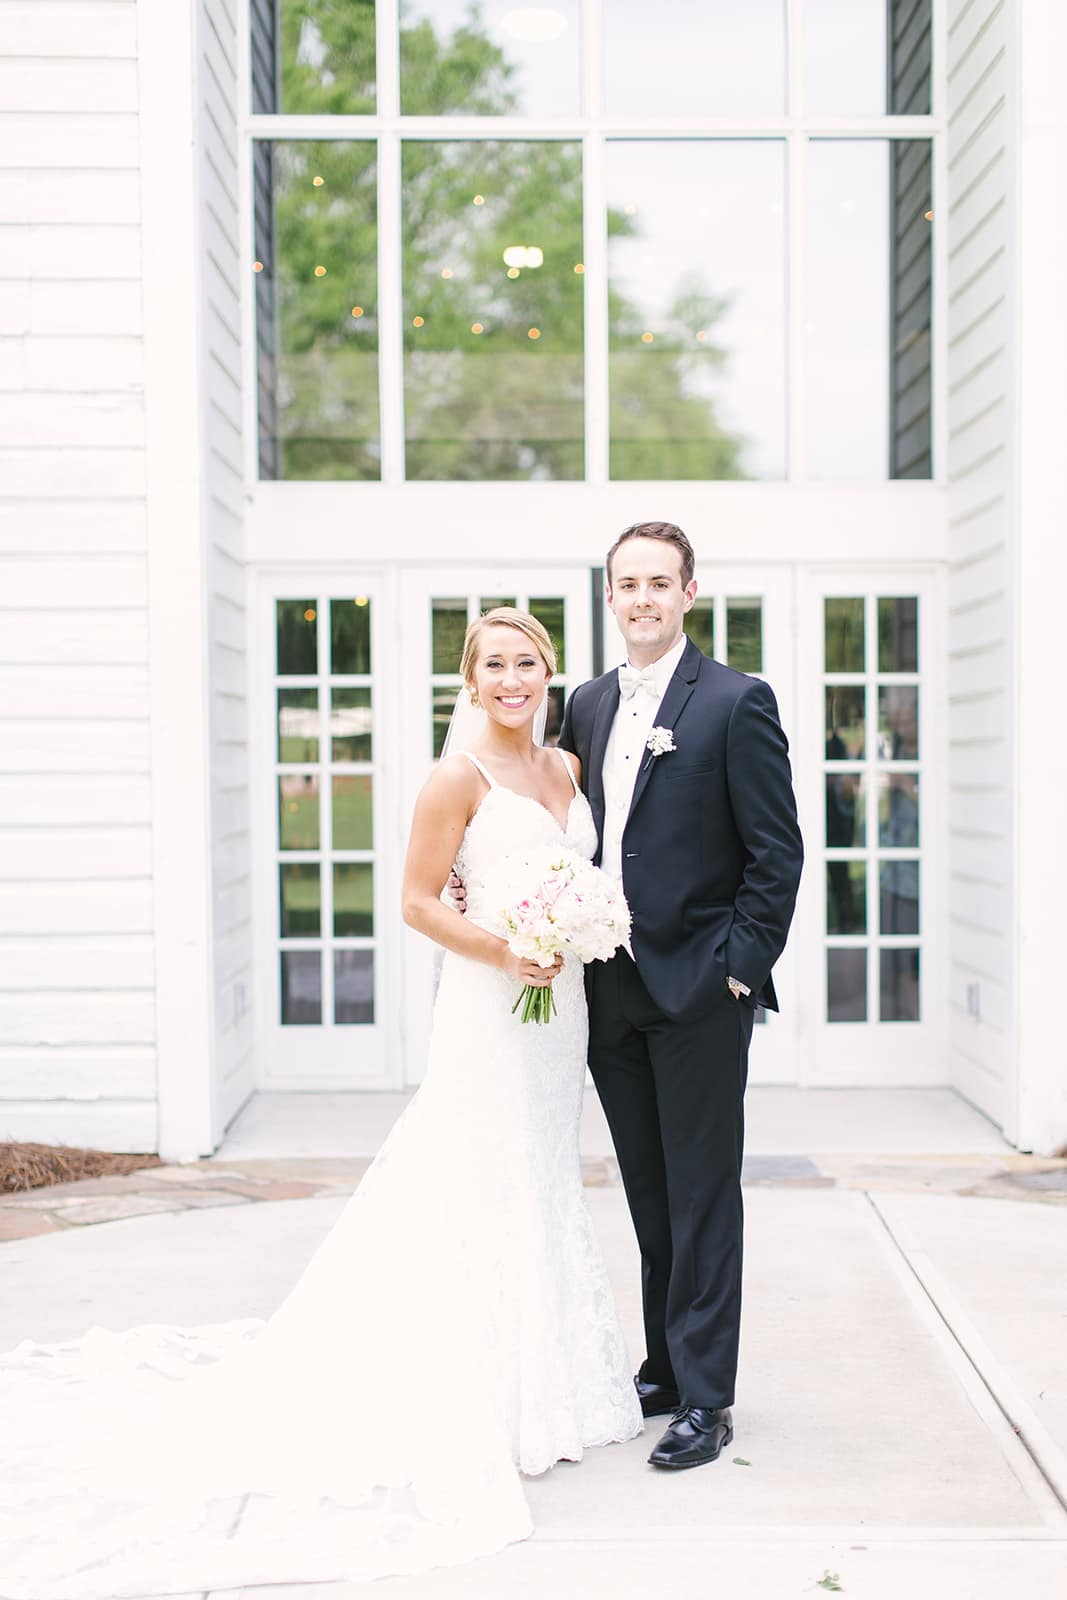 Bride and groom pose in front of a large glass window at The Diary Barn captured by Paige Ryan Photography